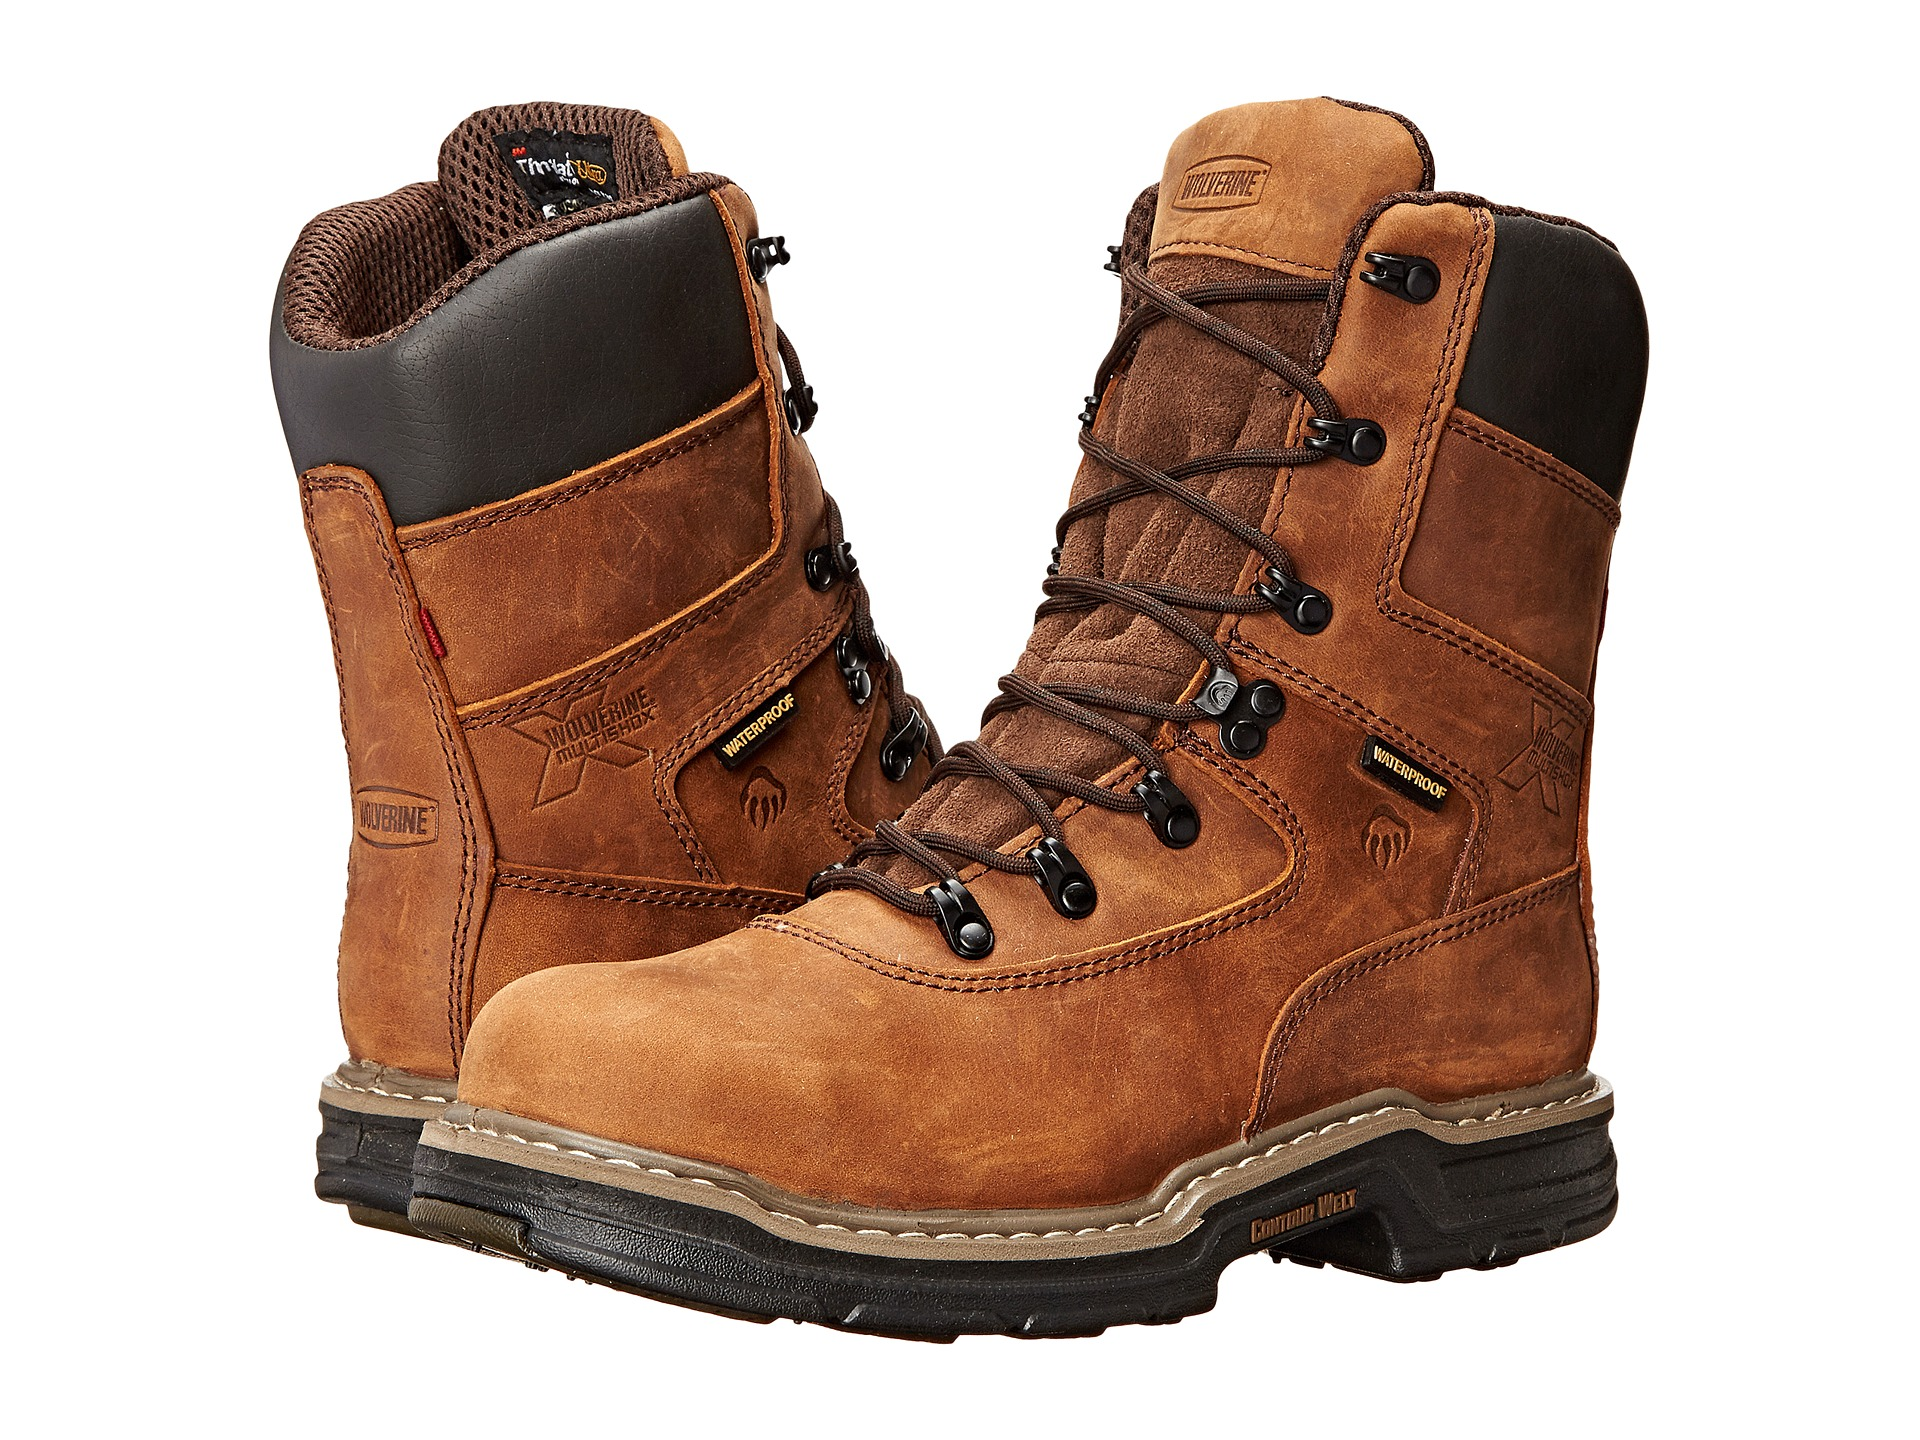 Shoes online for women Best place to buy steel toe boots